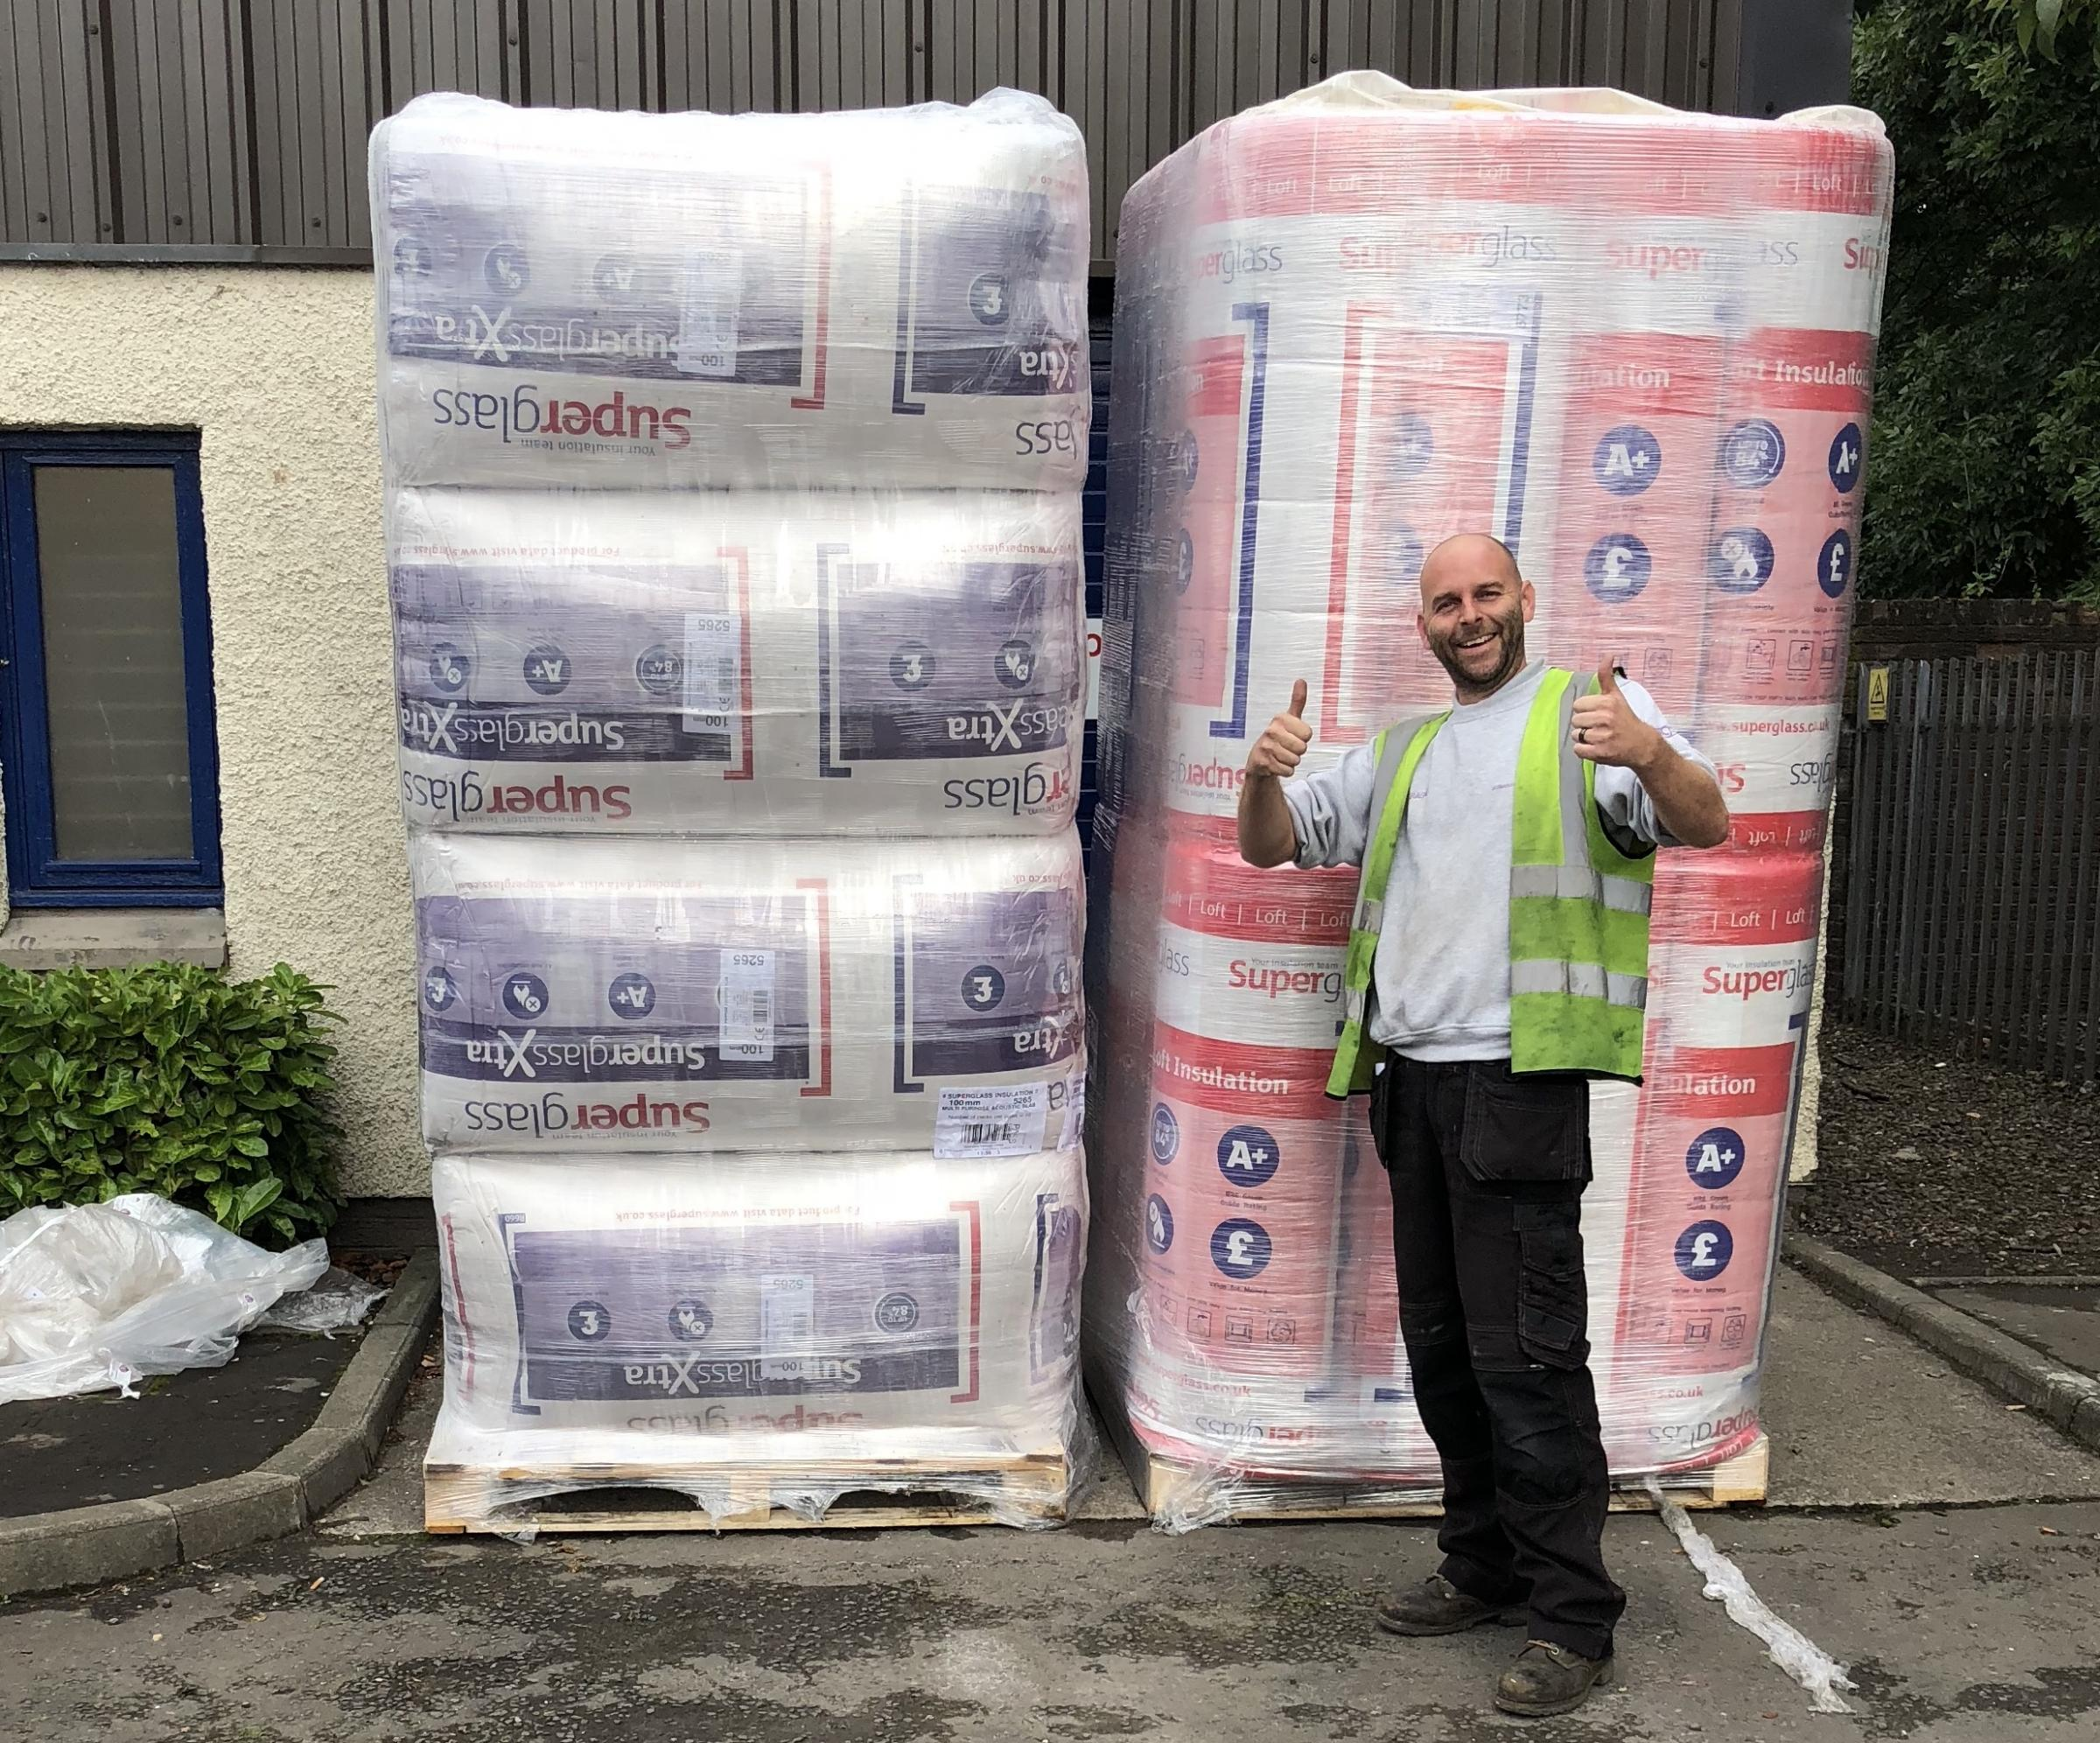 Superglass donated £665 worth of insulation